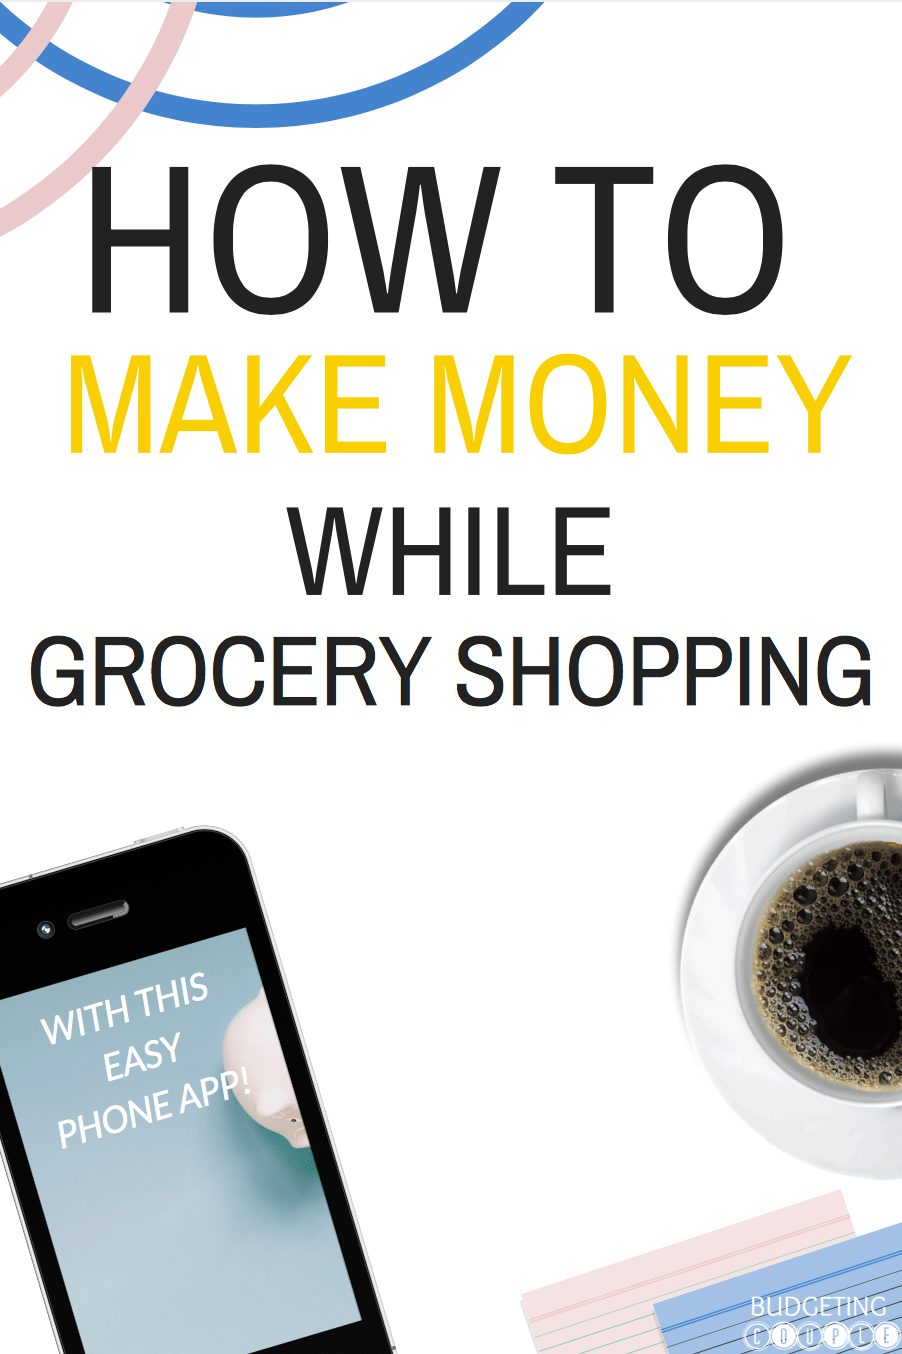 How to Make Money Grocery Shopping With An Easy Phone App!